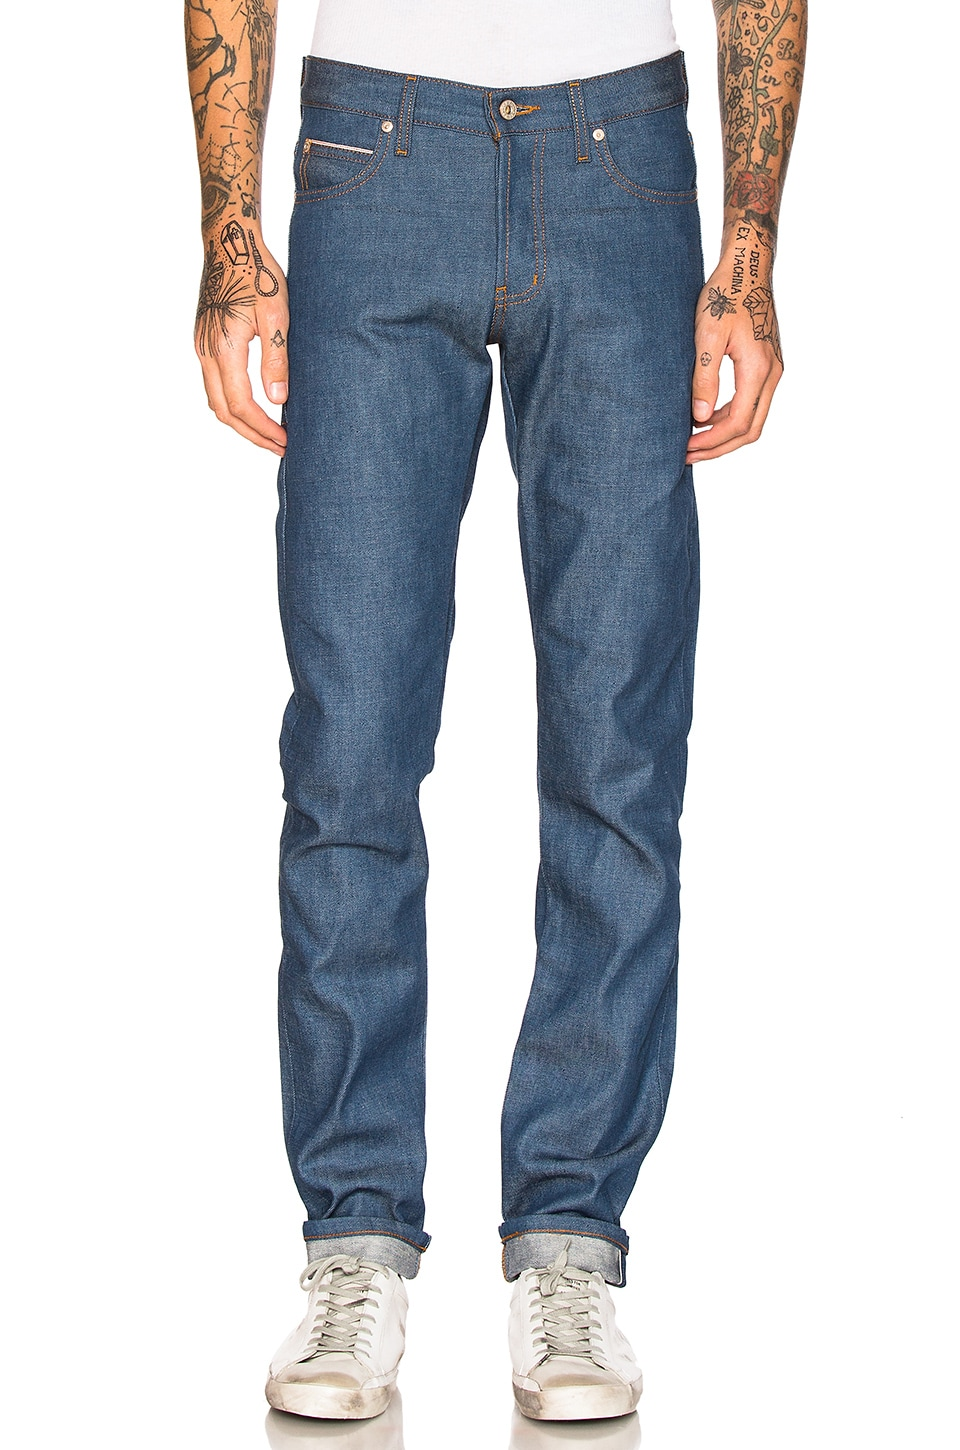 Super Skinny Guy Sunrise Selvedge 10oz by Naked & Famous Denim